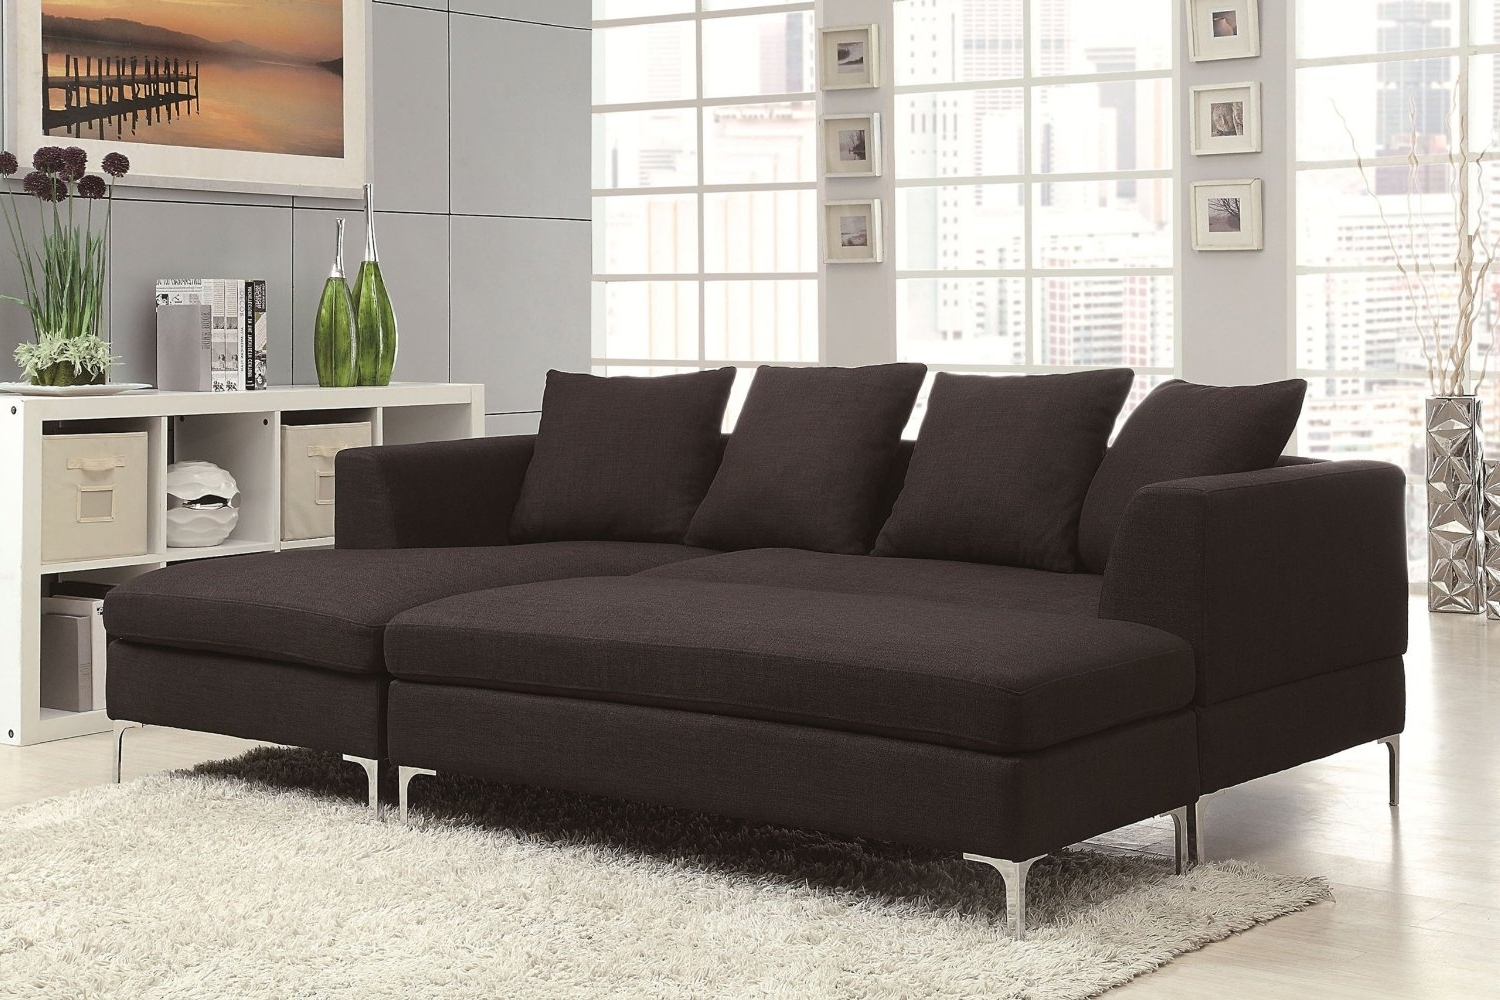 Sofa : Modular Sofa Reclining Sectional With Chaise Small Regarding 2018 Sectional Chaise Sofas (View 5 of 15)